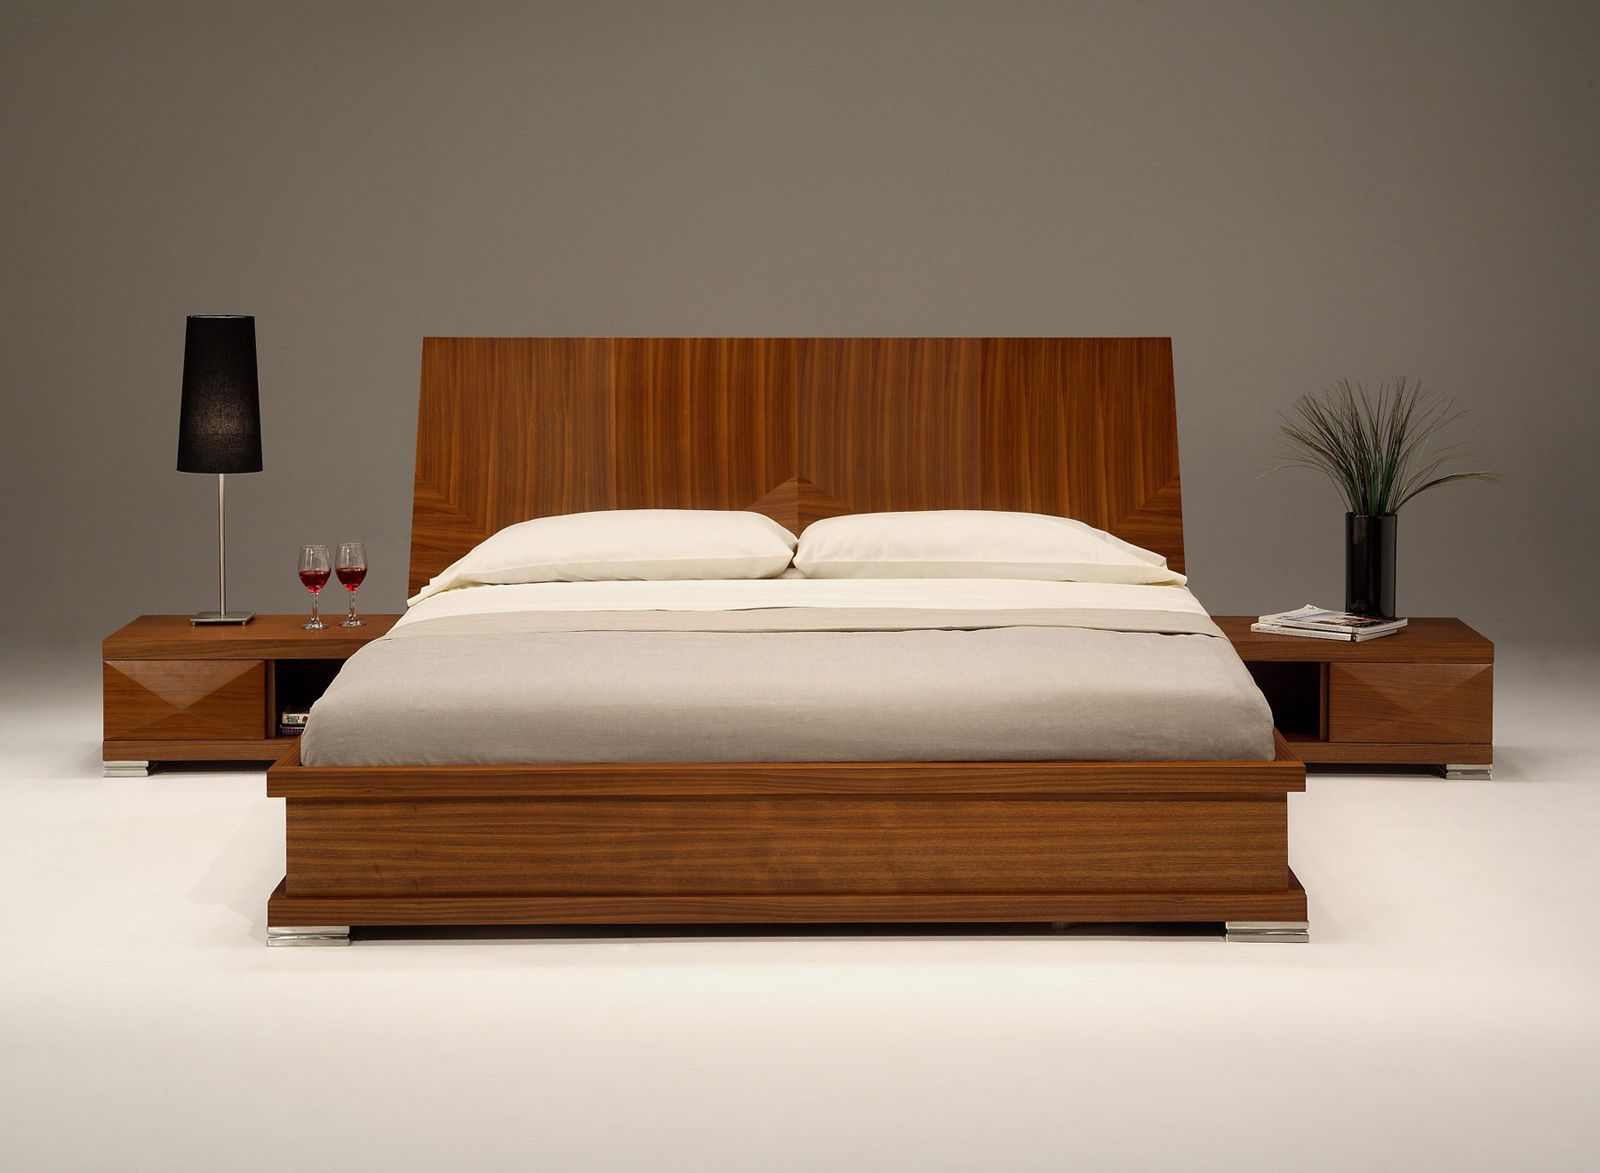 Place Wooden Bed and Laminate Nightstands for Modern Bedroom Furniture on White Concrete Flooring